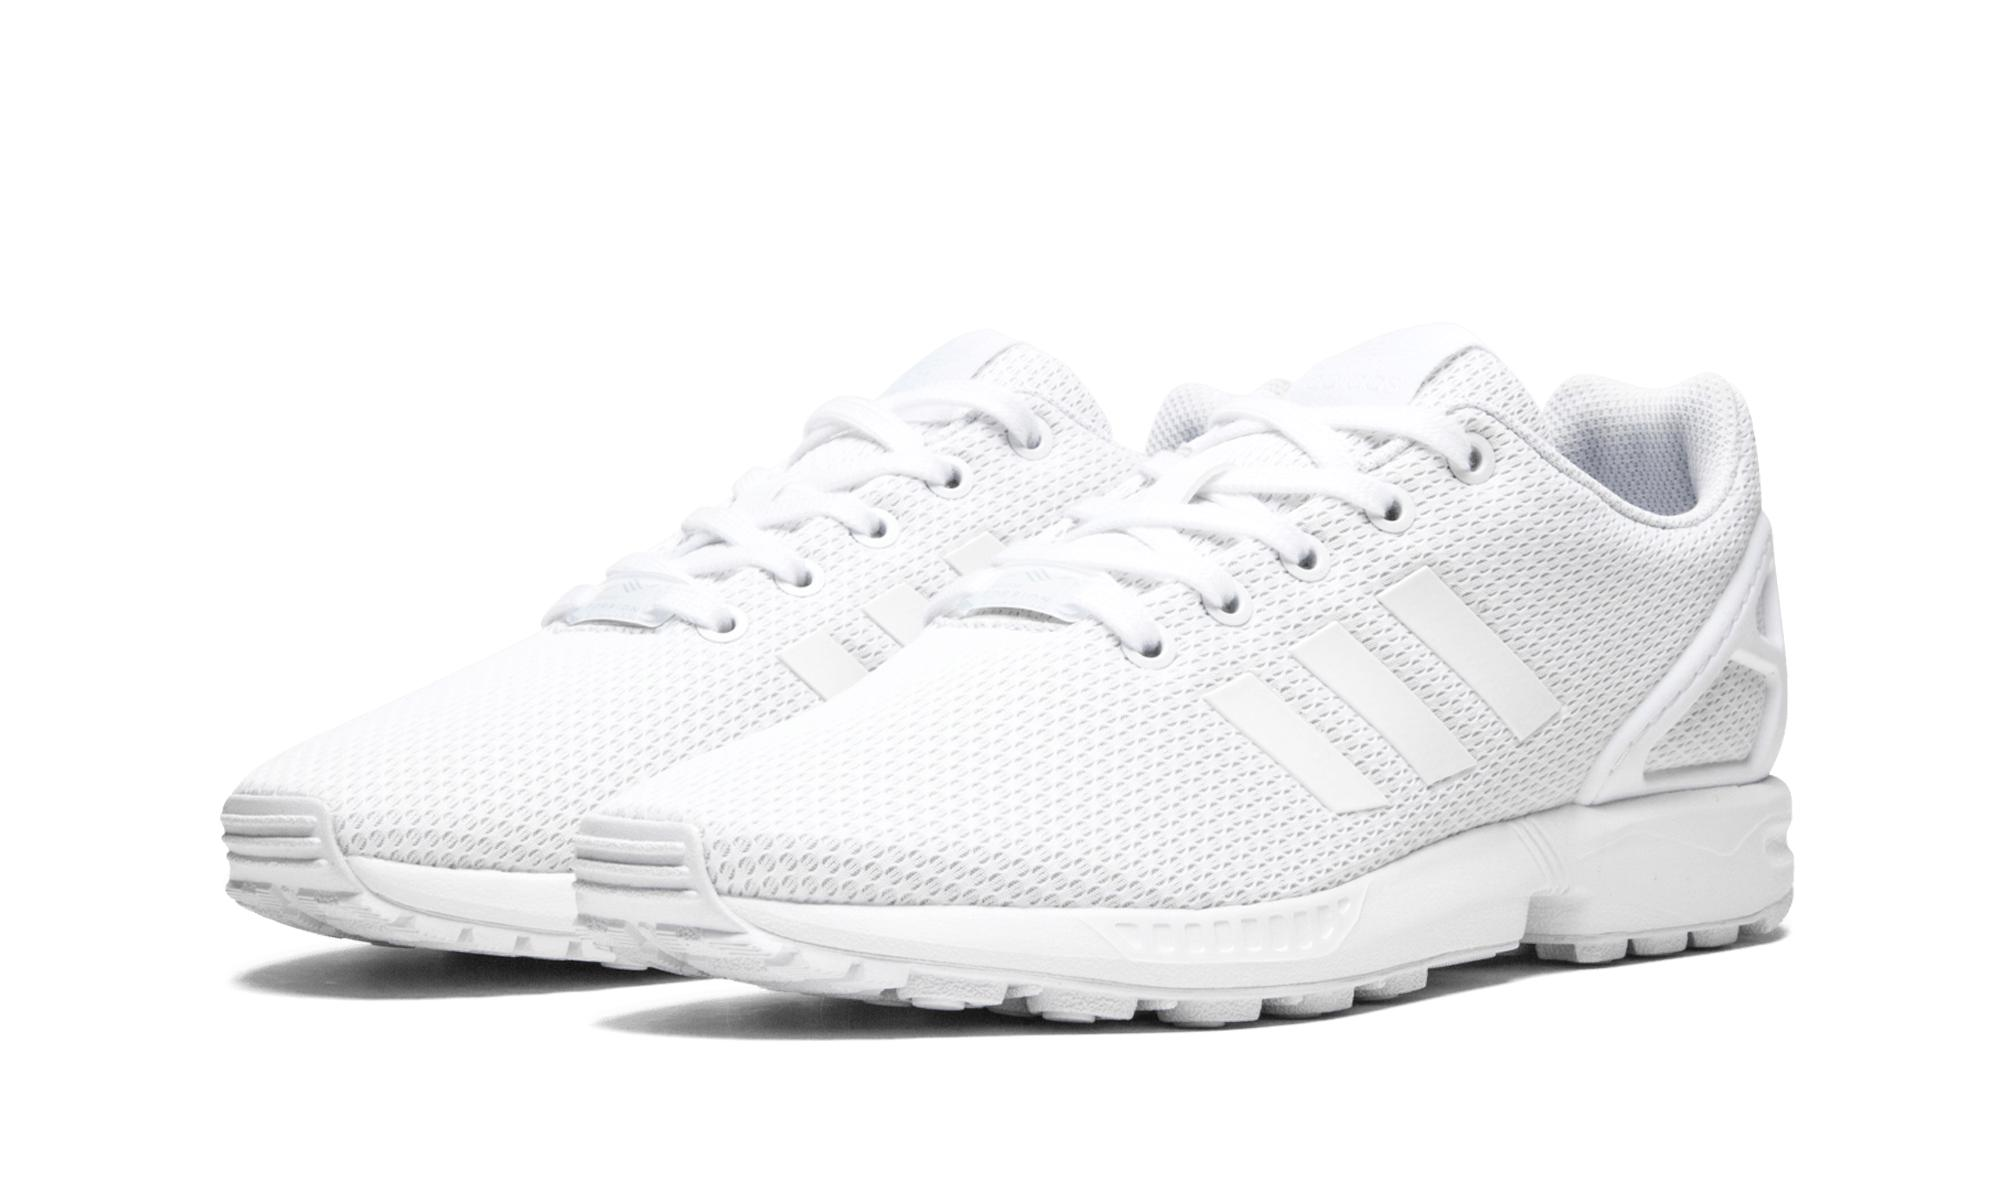 premium selection 43403 94c6d Lyst - adidas Zx Flux J in White for Men - Save 28%